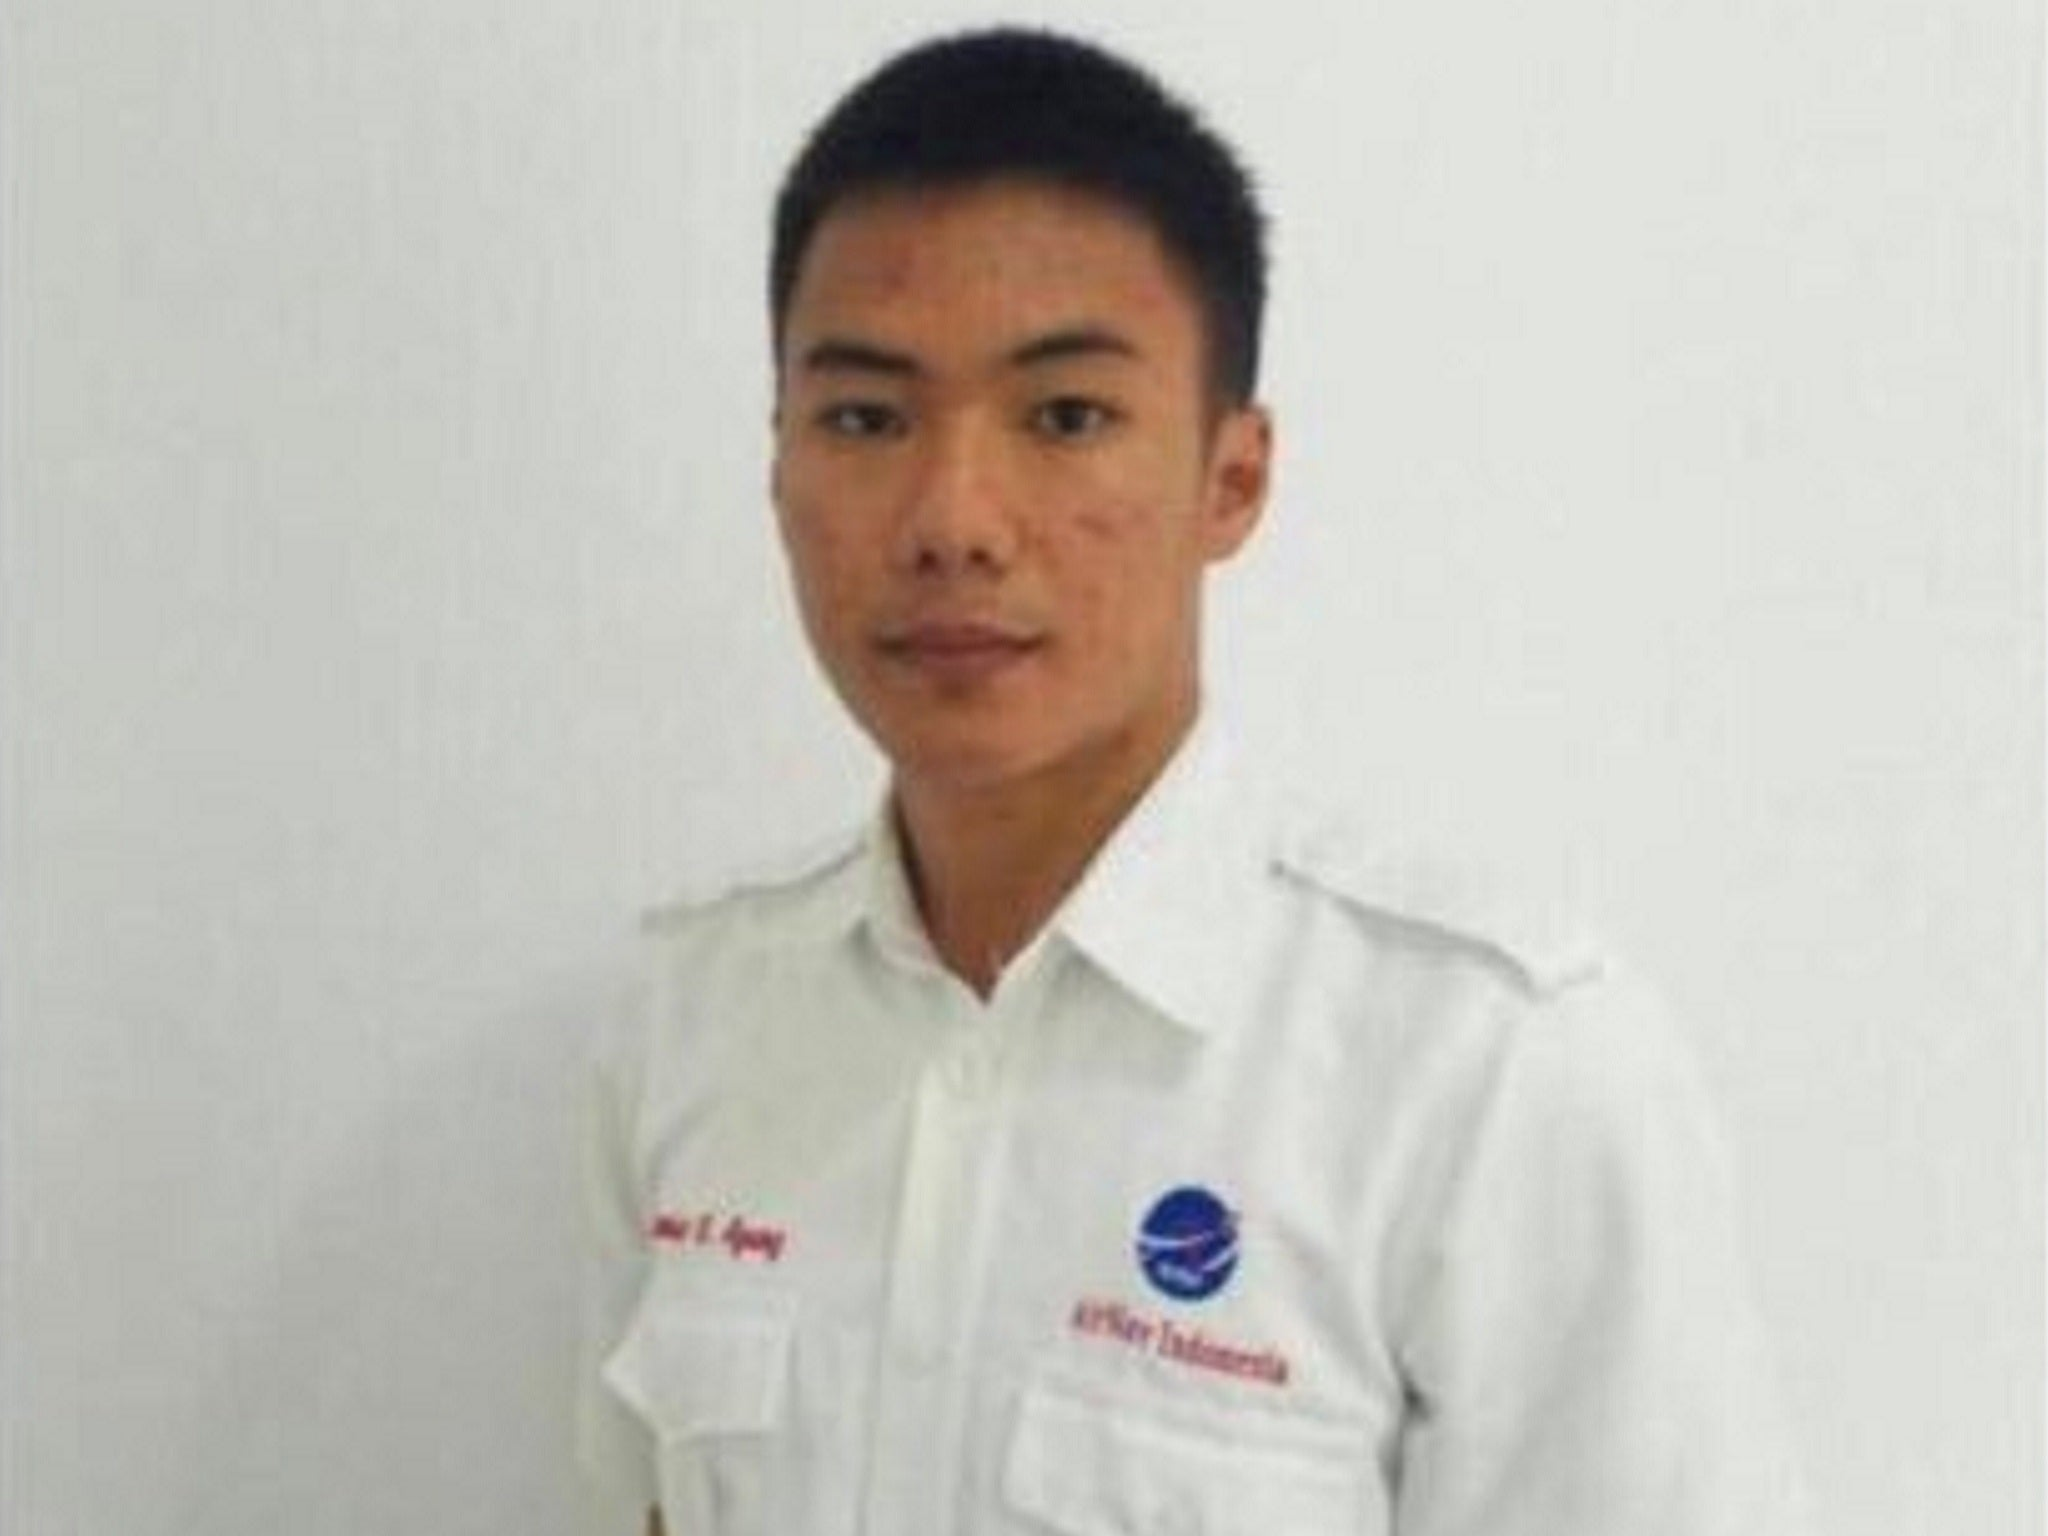 Indonesia tsunami: Air traffic controller 'gave his life so plane could take off'